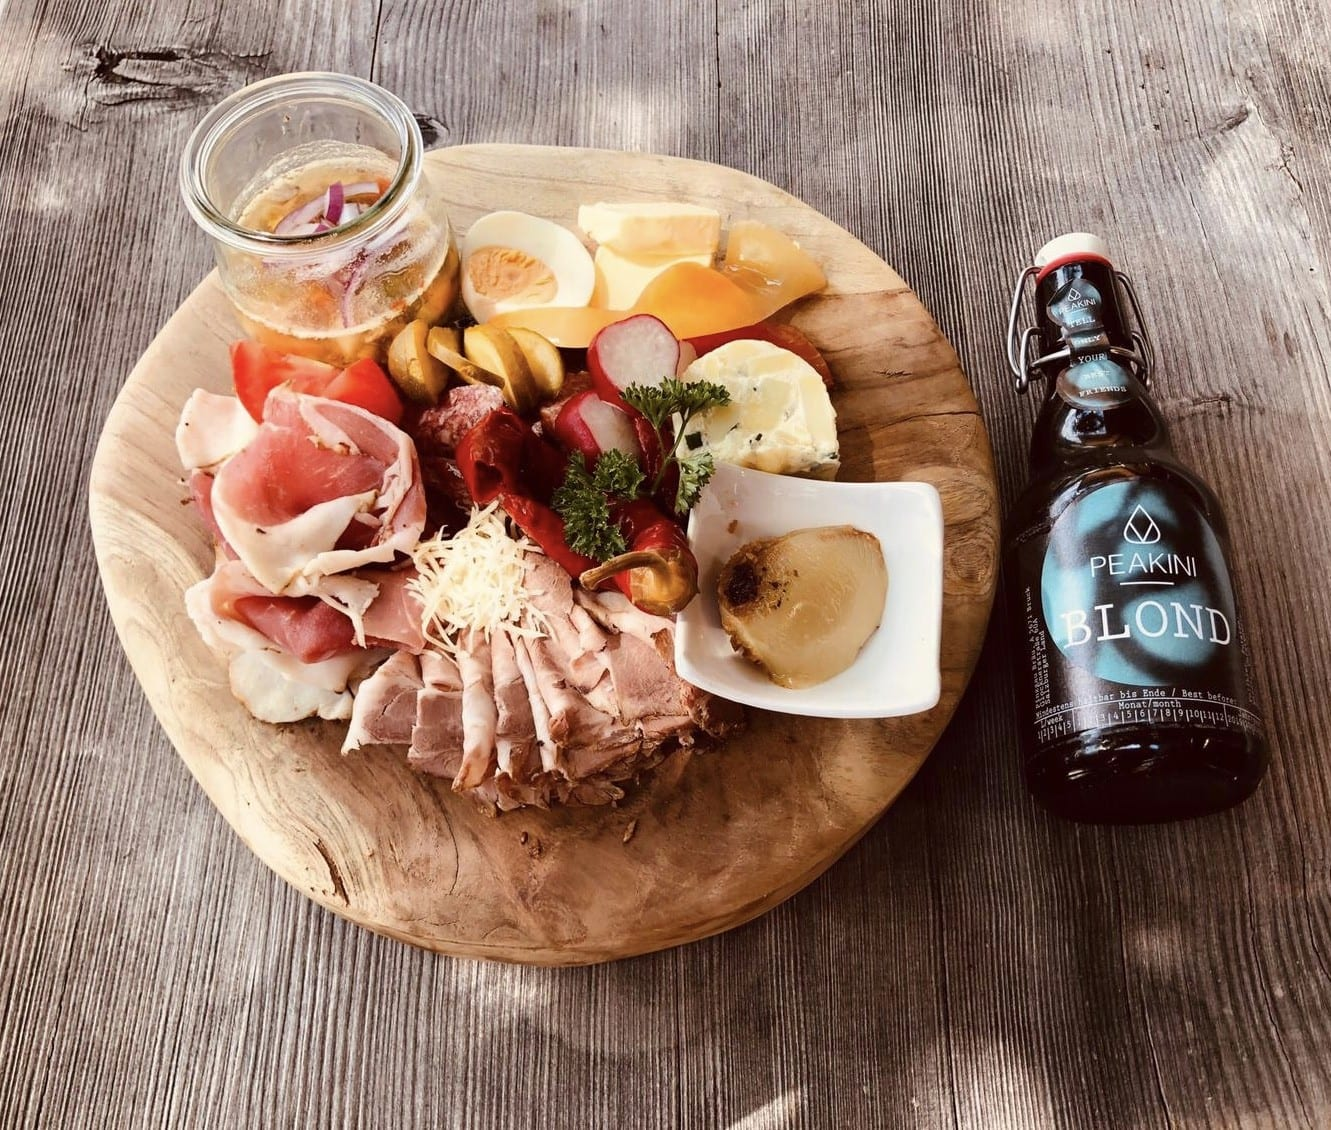 Unknown 1 - Delicious food and drinks im Farmhaus